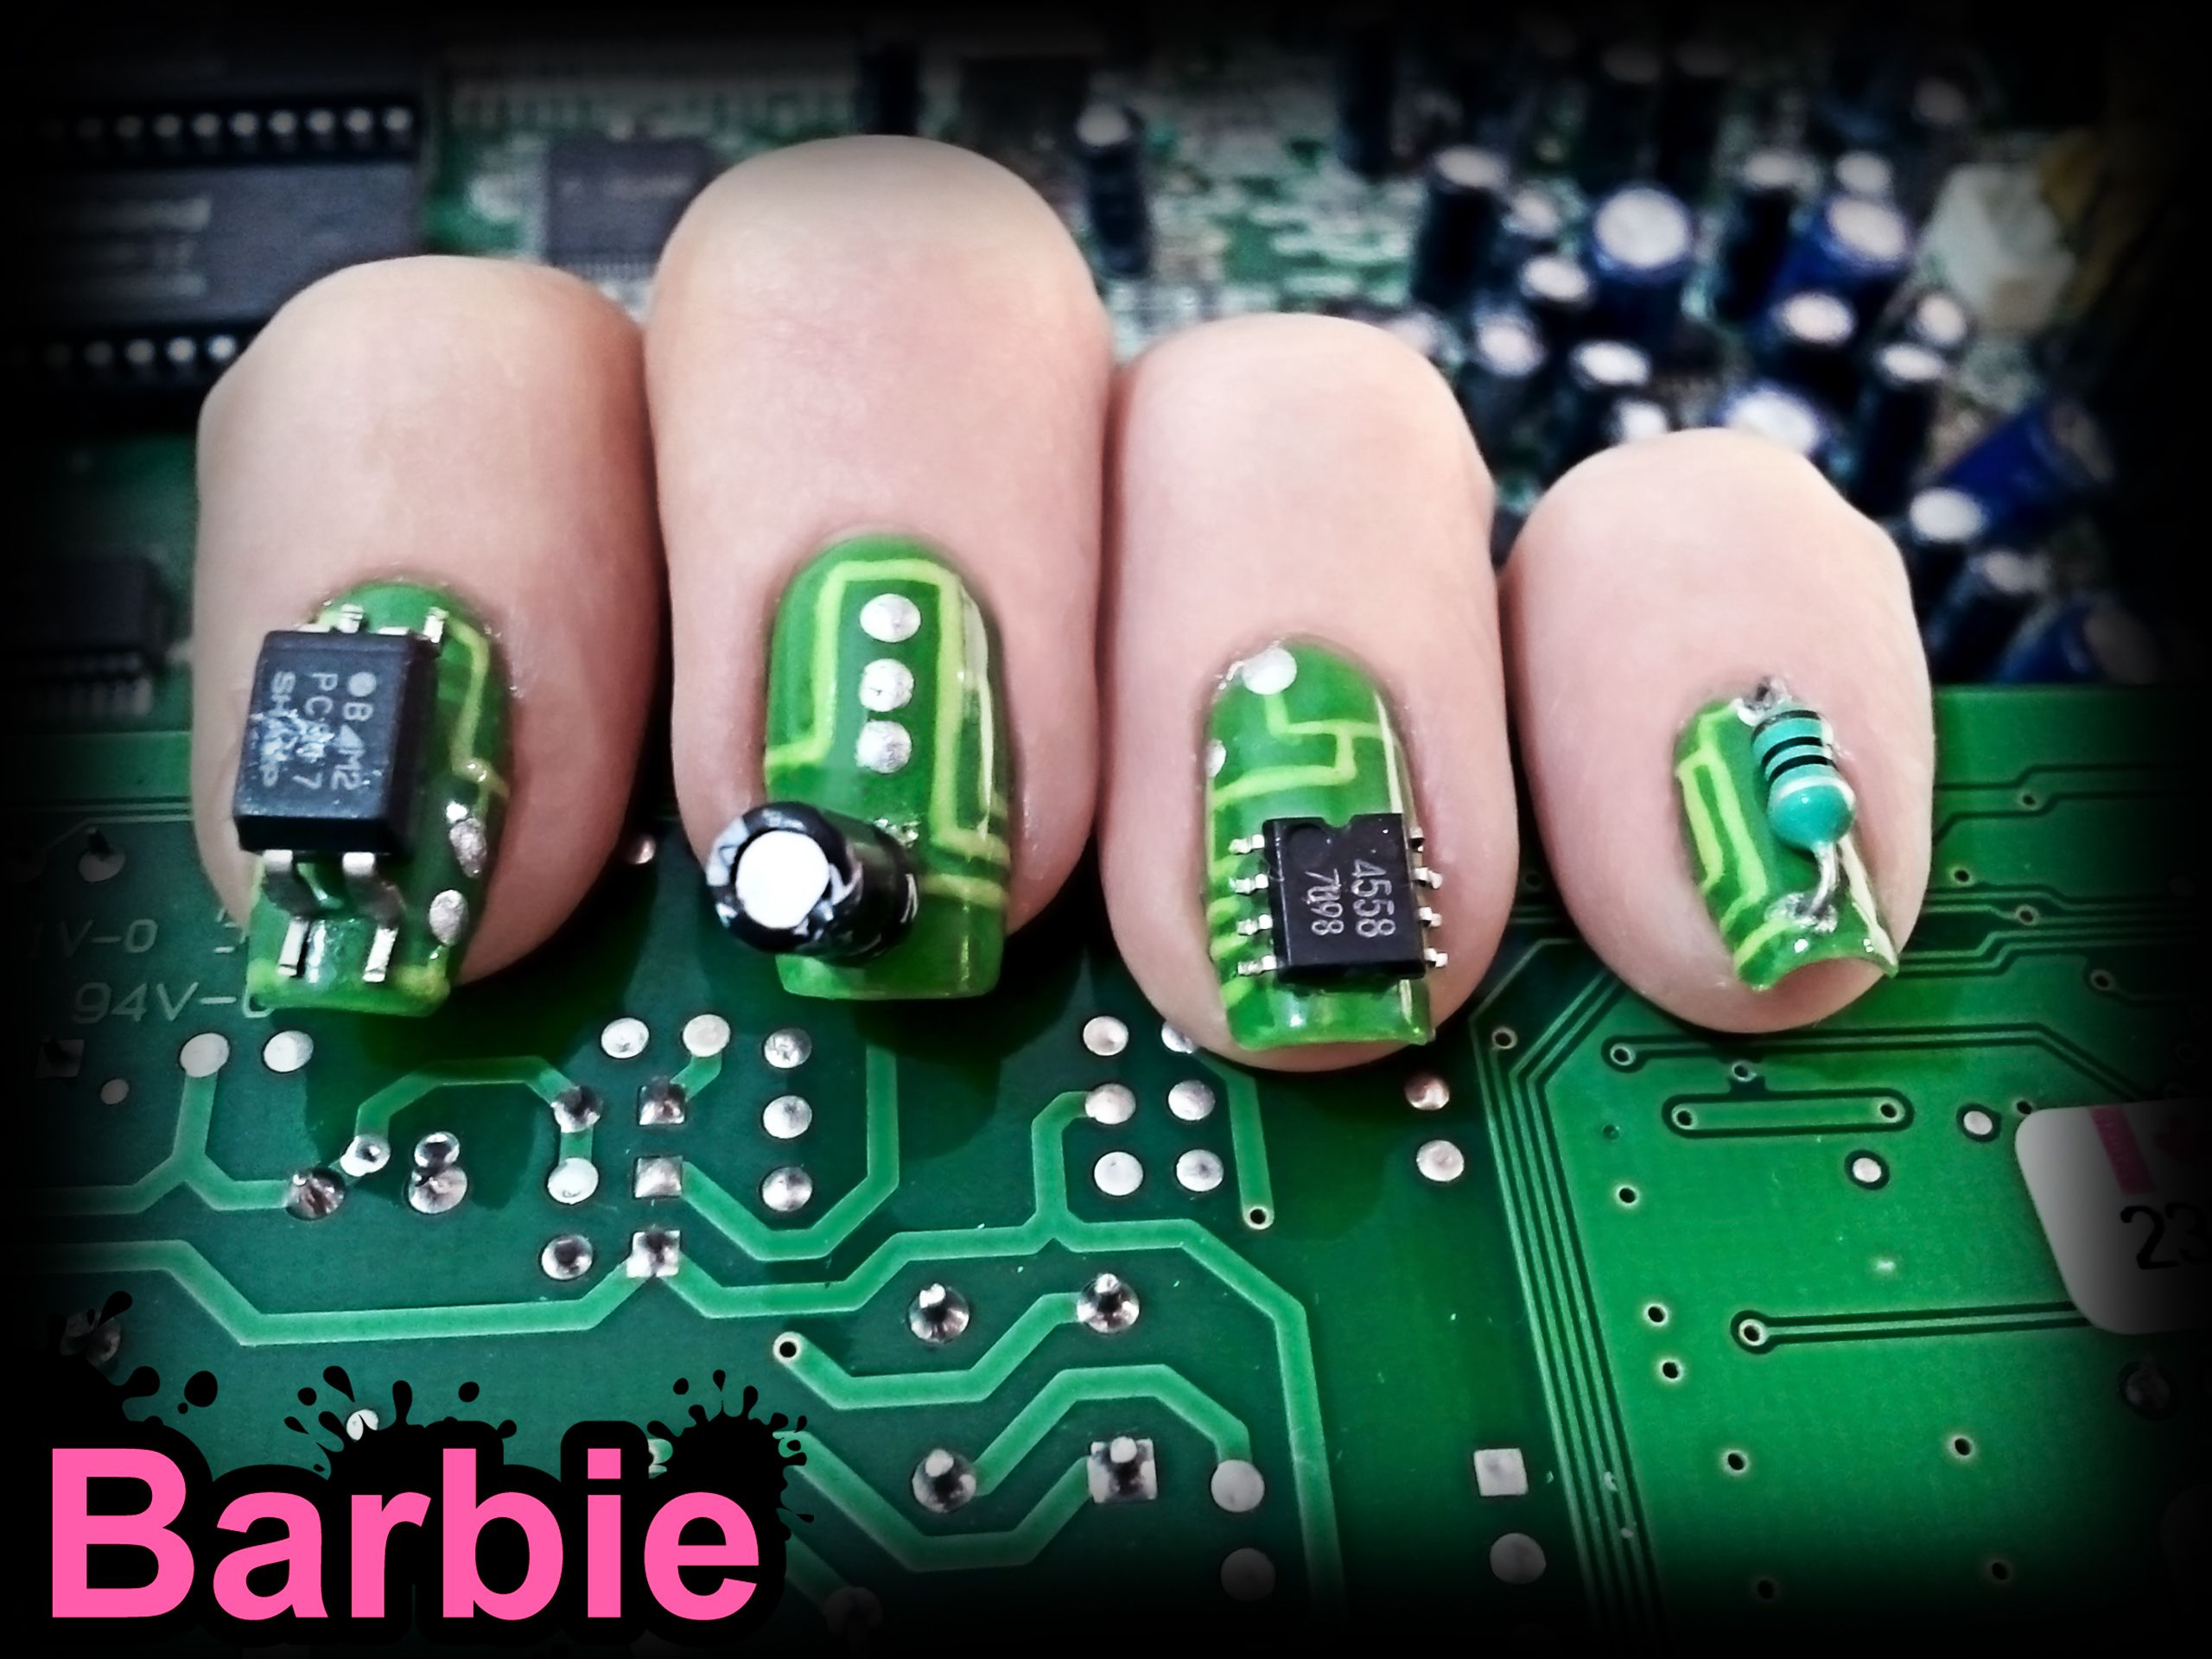 Circuit Nails - Nail design in electronic circuit form influenced by ...